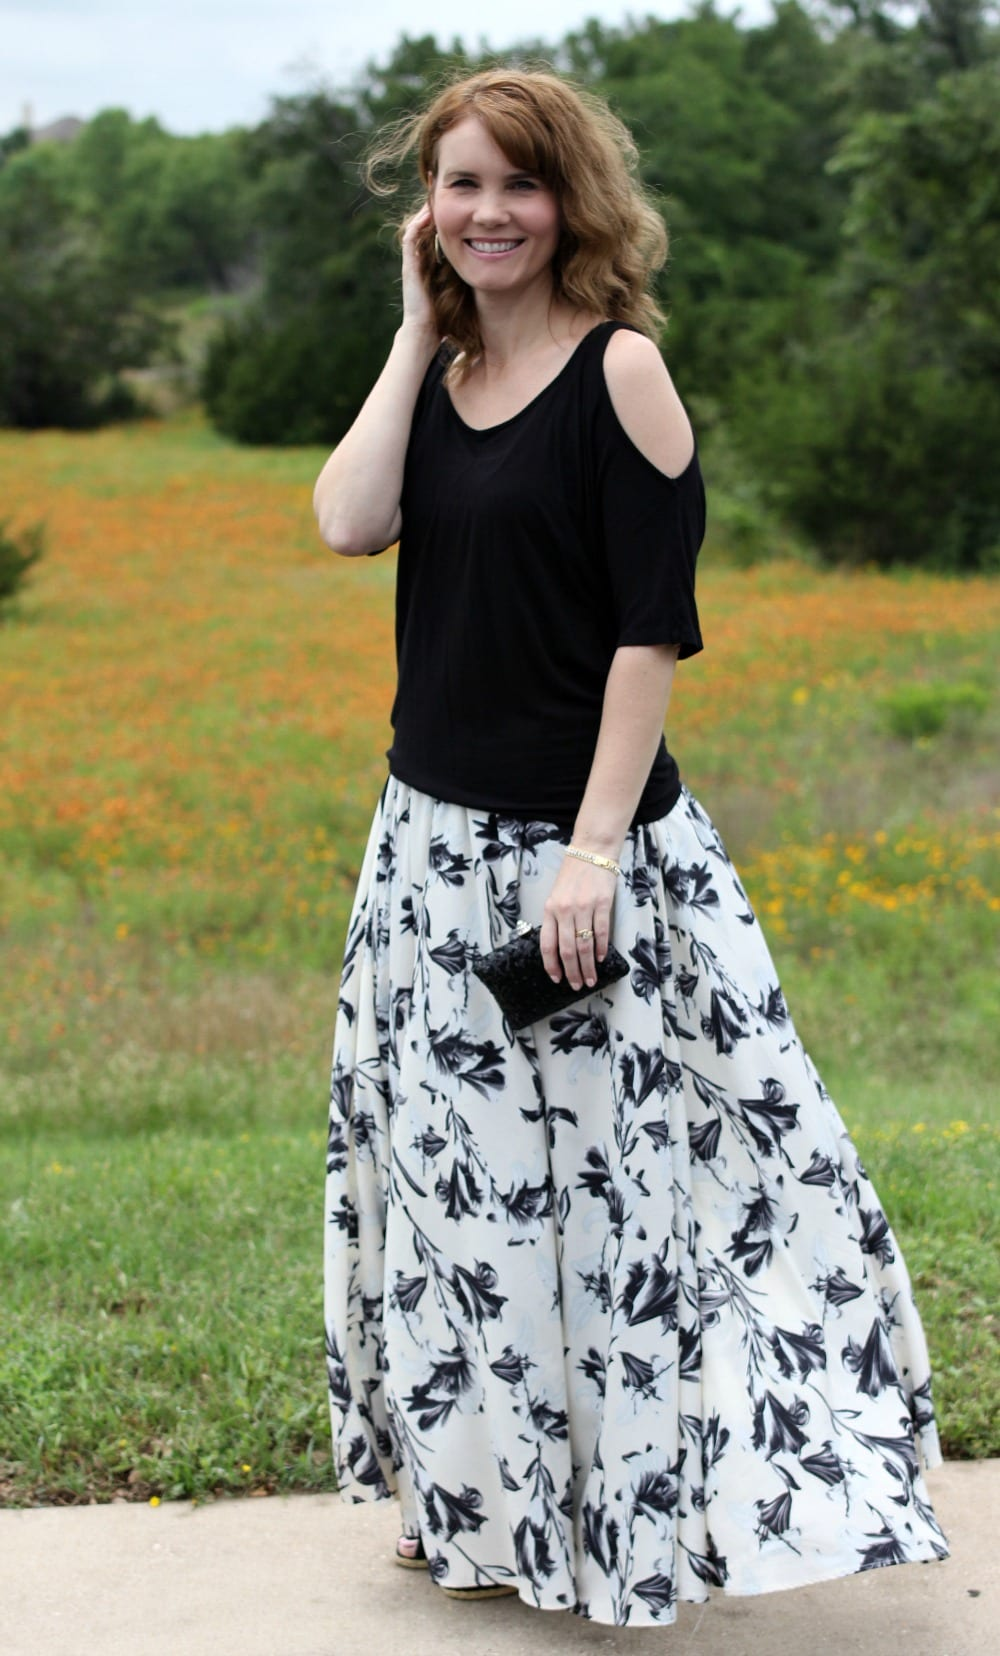 A dressed up maxi skirt outfit - break out the off the shoulder shirt or one with shoulder cutouts, pair it with a maxi skirt, wedges, clutch and some pretty accessories for the perfect date night summer outfit.